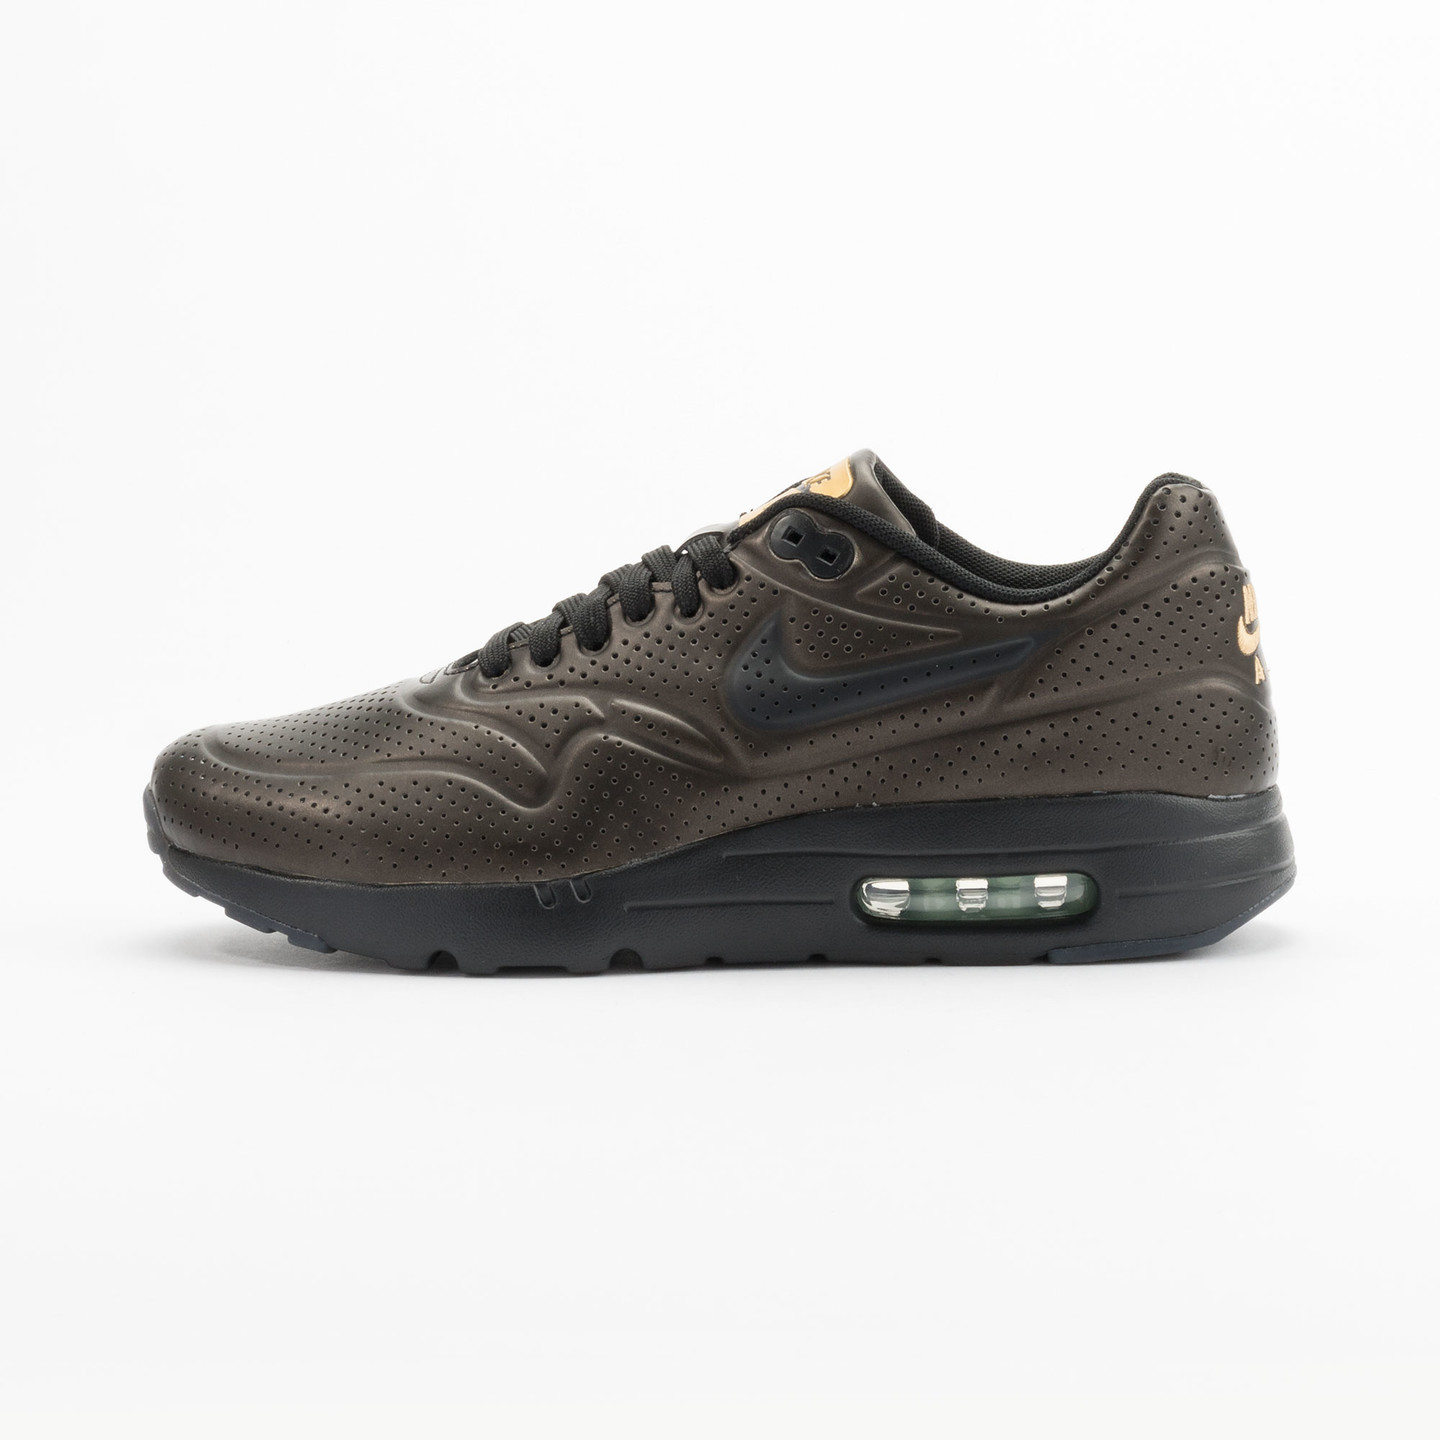 Nike Air Max 1 Ultra Moire Metallic Gold / Black 705297-700-42.5